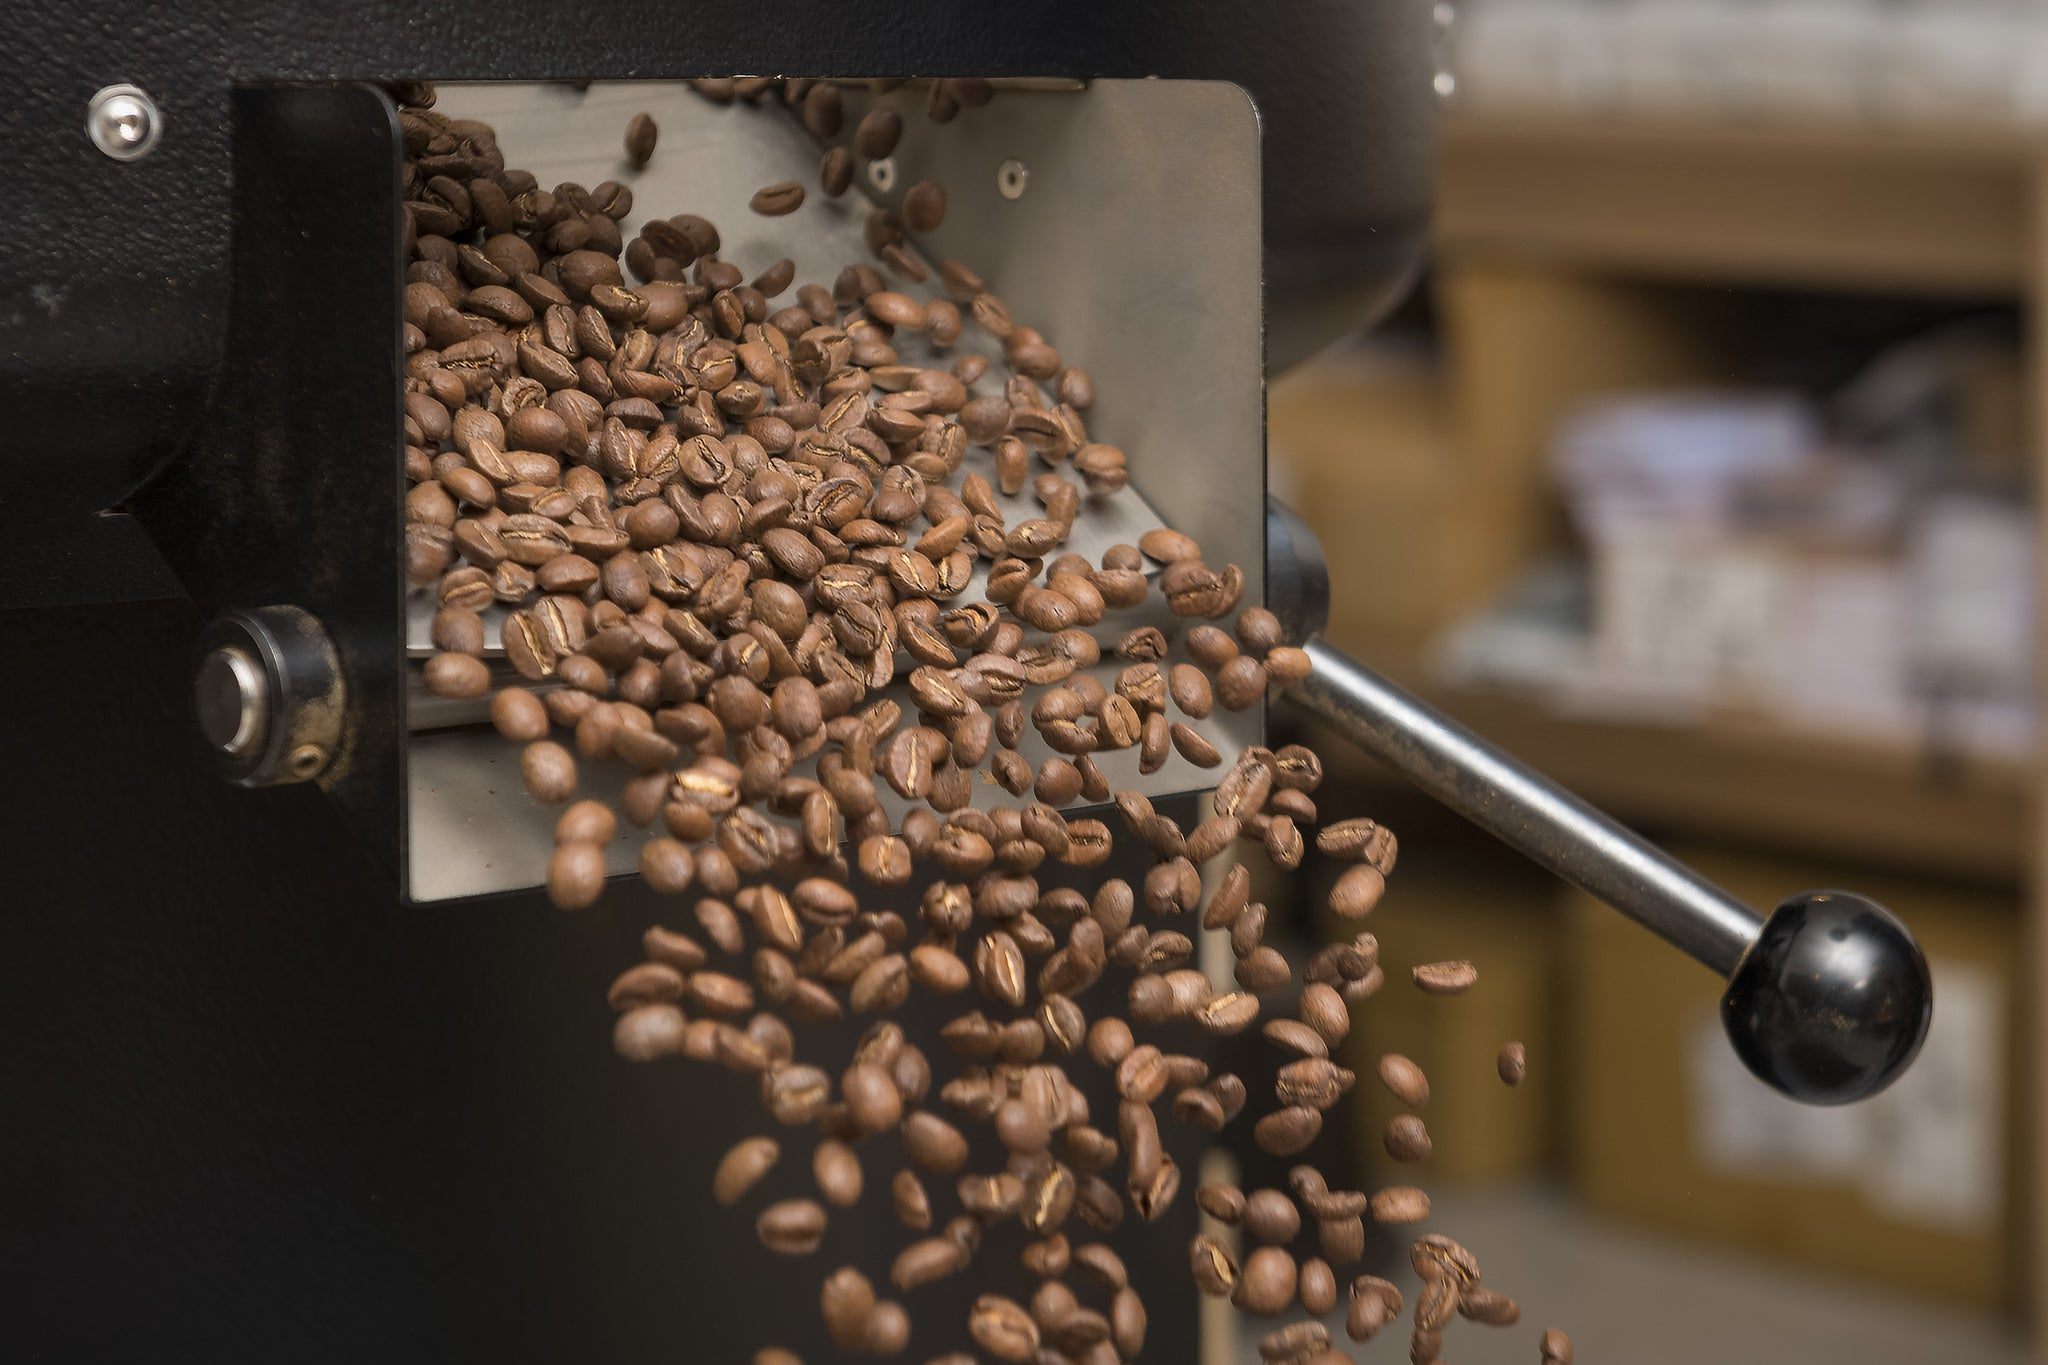 Coffee beans falling out of a roasting machine